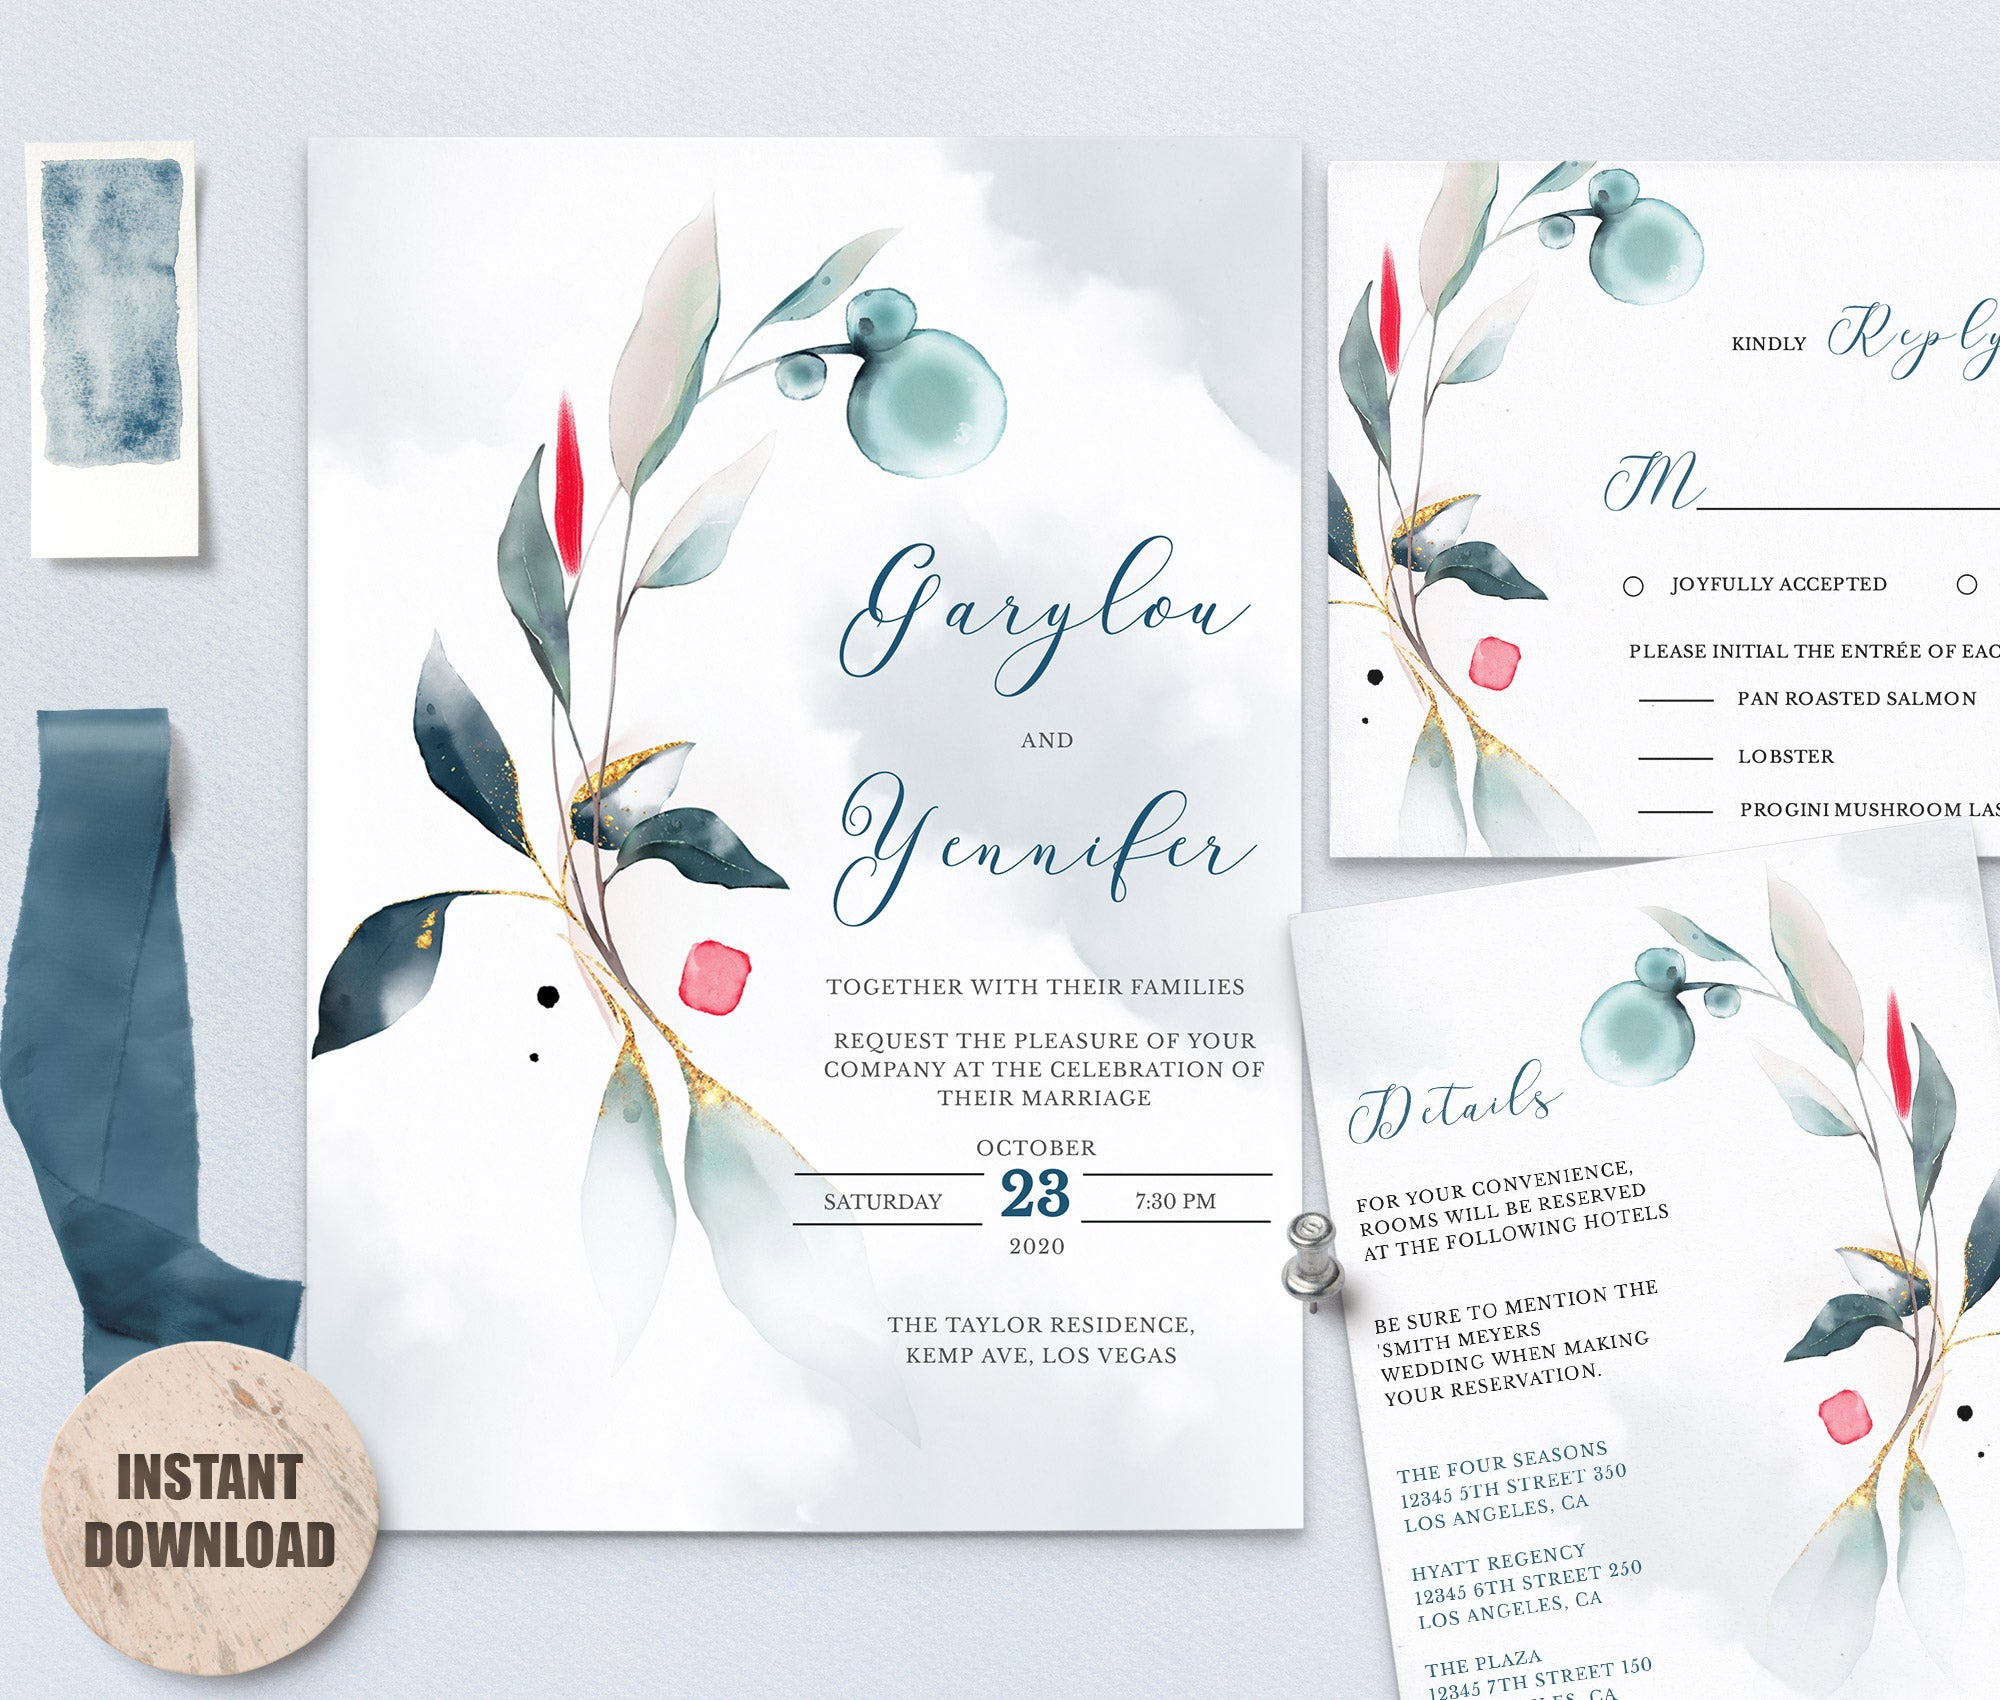 SPMR - Wedding Template Bundles set 3 - Greenlanderdesign